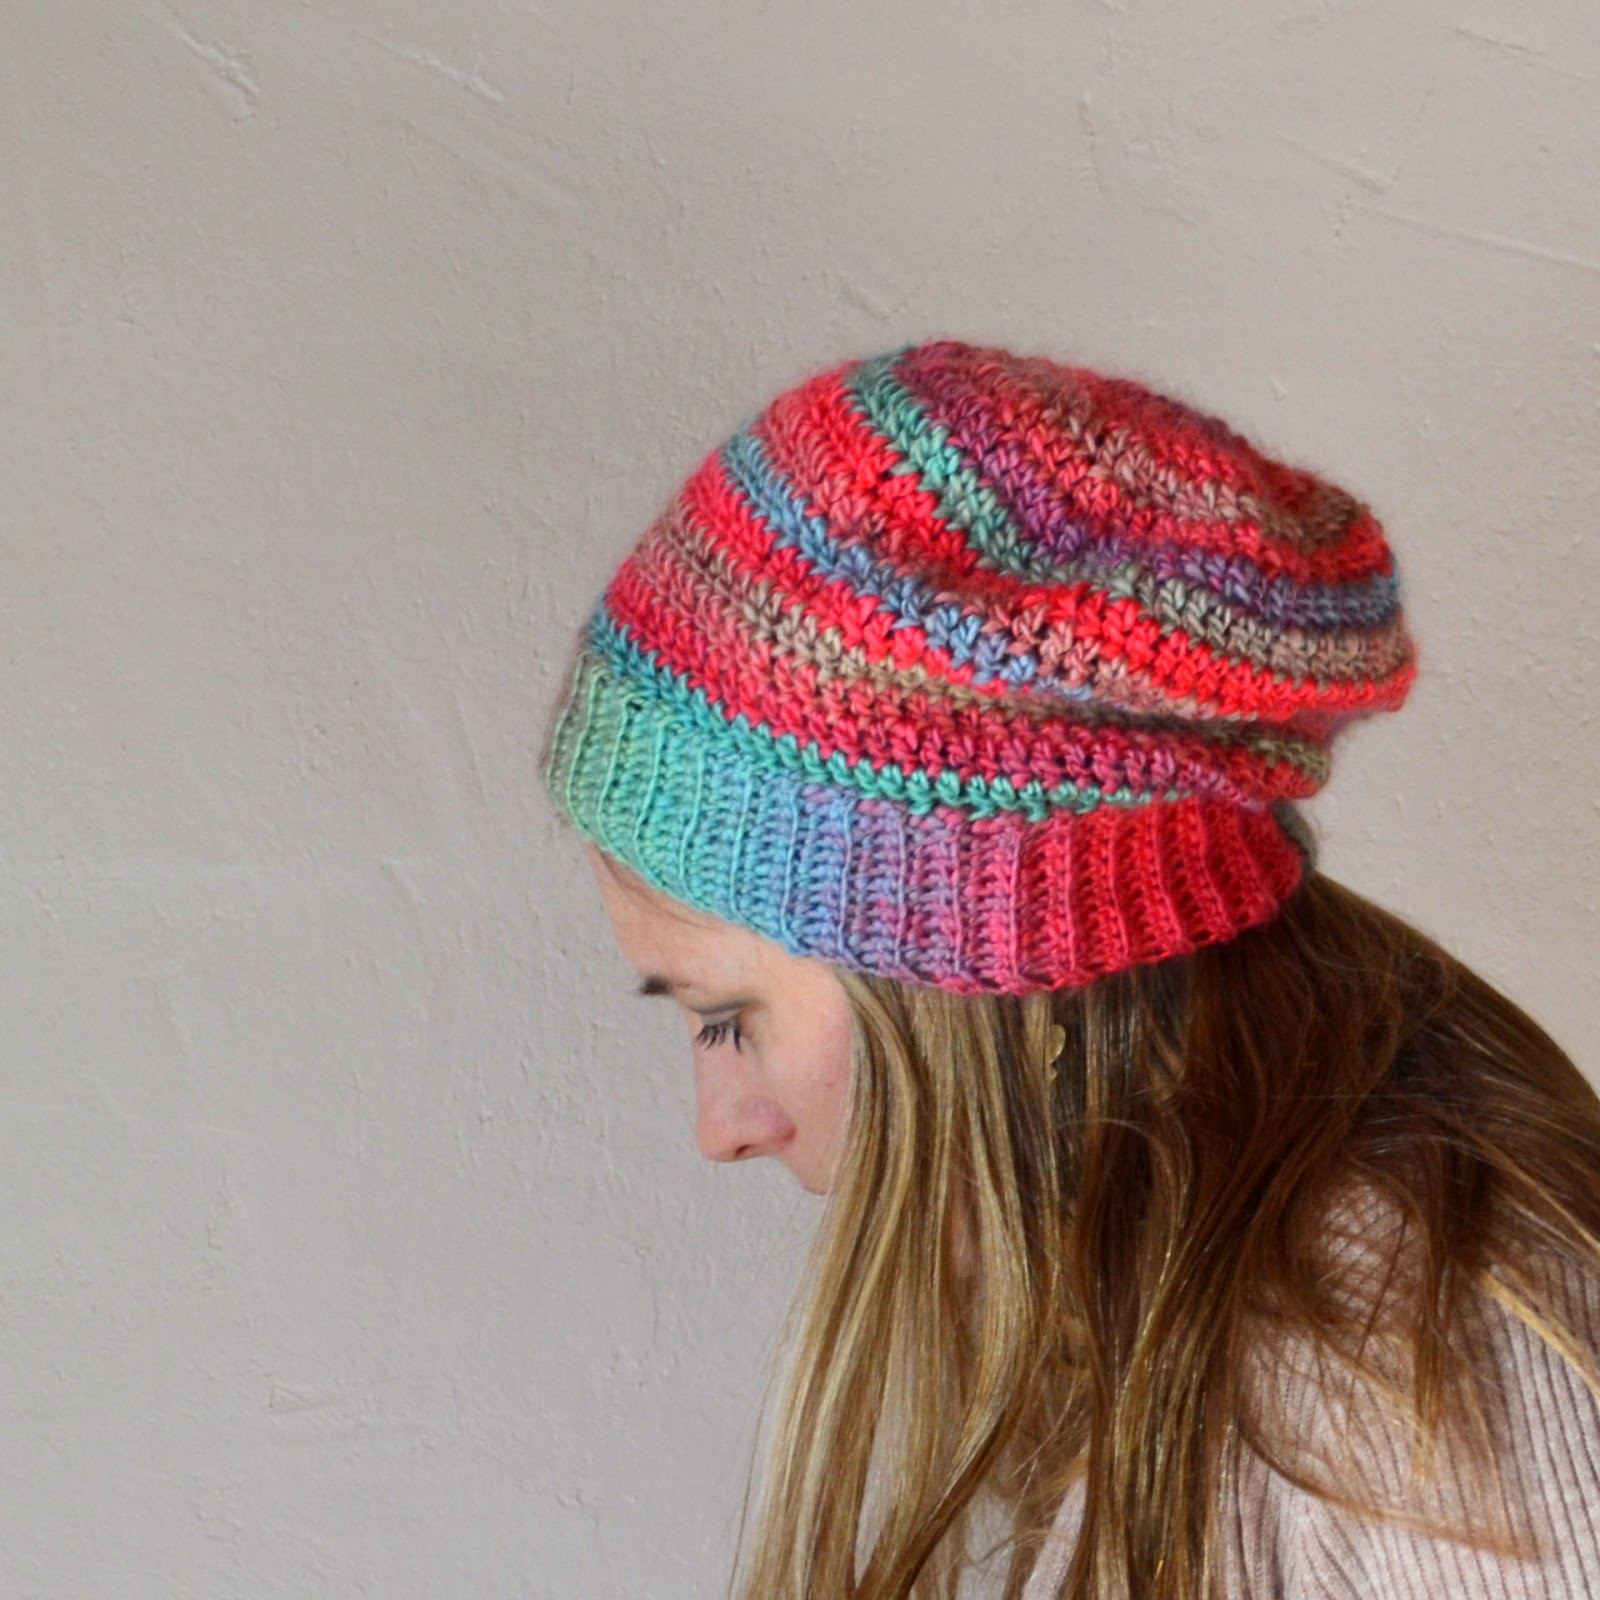 Crochet Pattern Helmet Hat : Crochet in Color: Unforgettable Hat